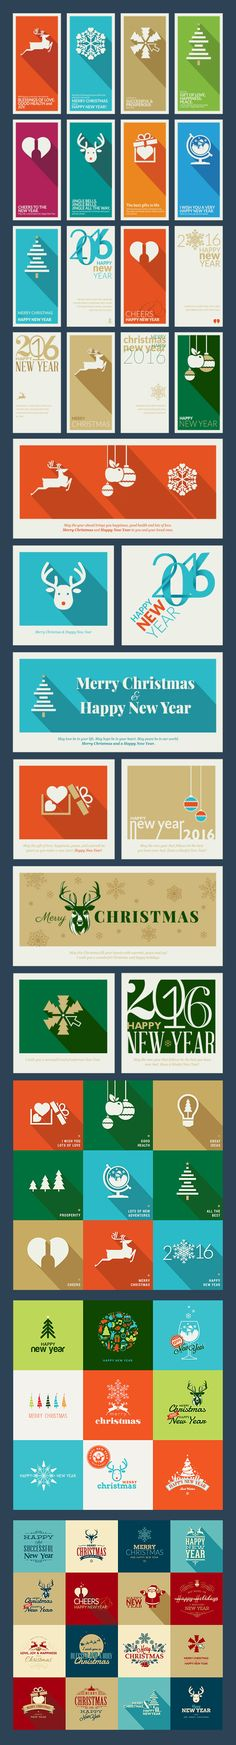 Buy Flat Design Christmas and New Year Greeting Cards by PureSolution on GraphicRiver. Set of flat design vector illustration Christmas and New Year's greeting cards.